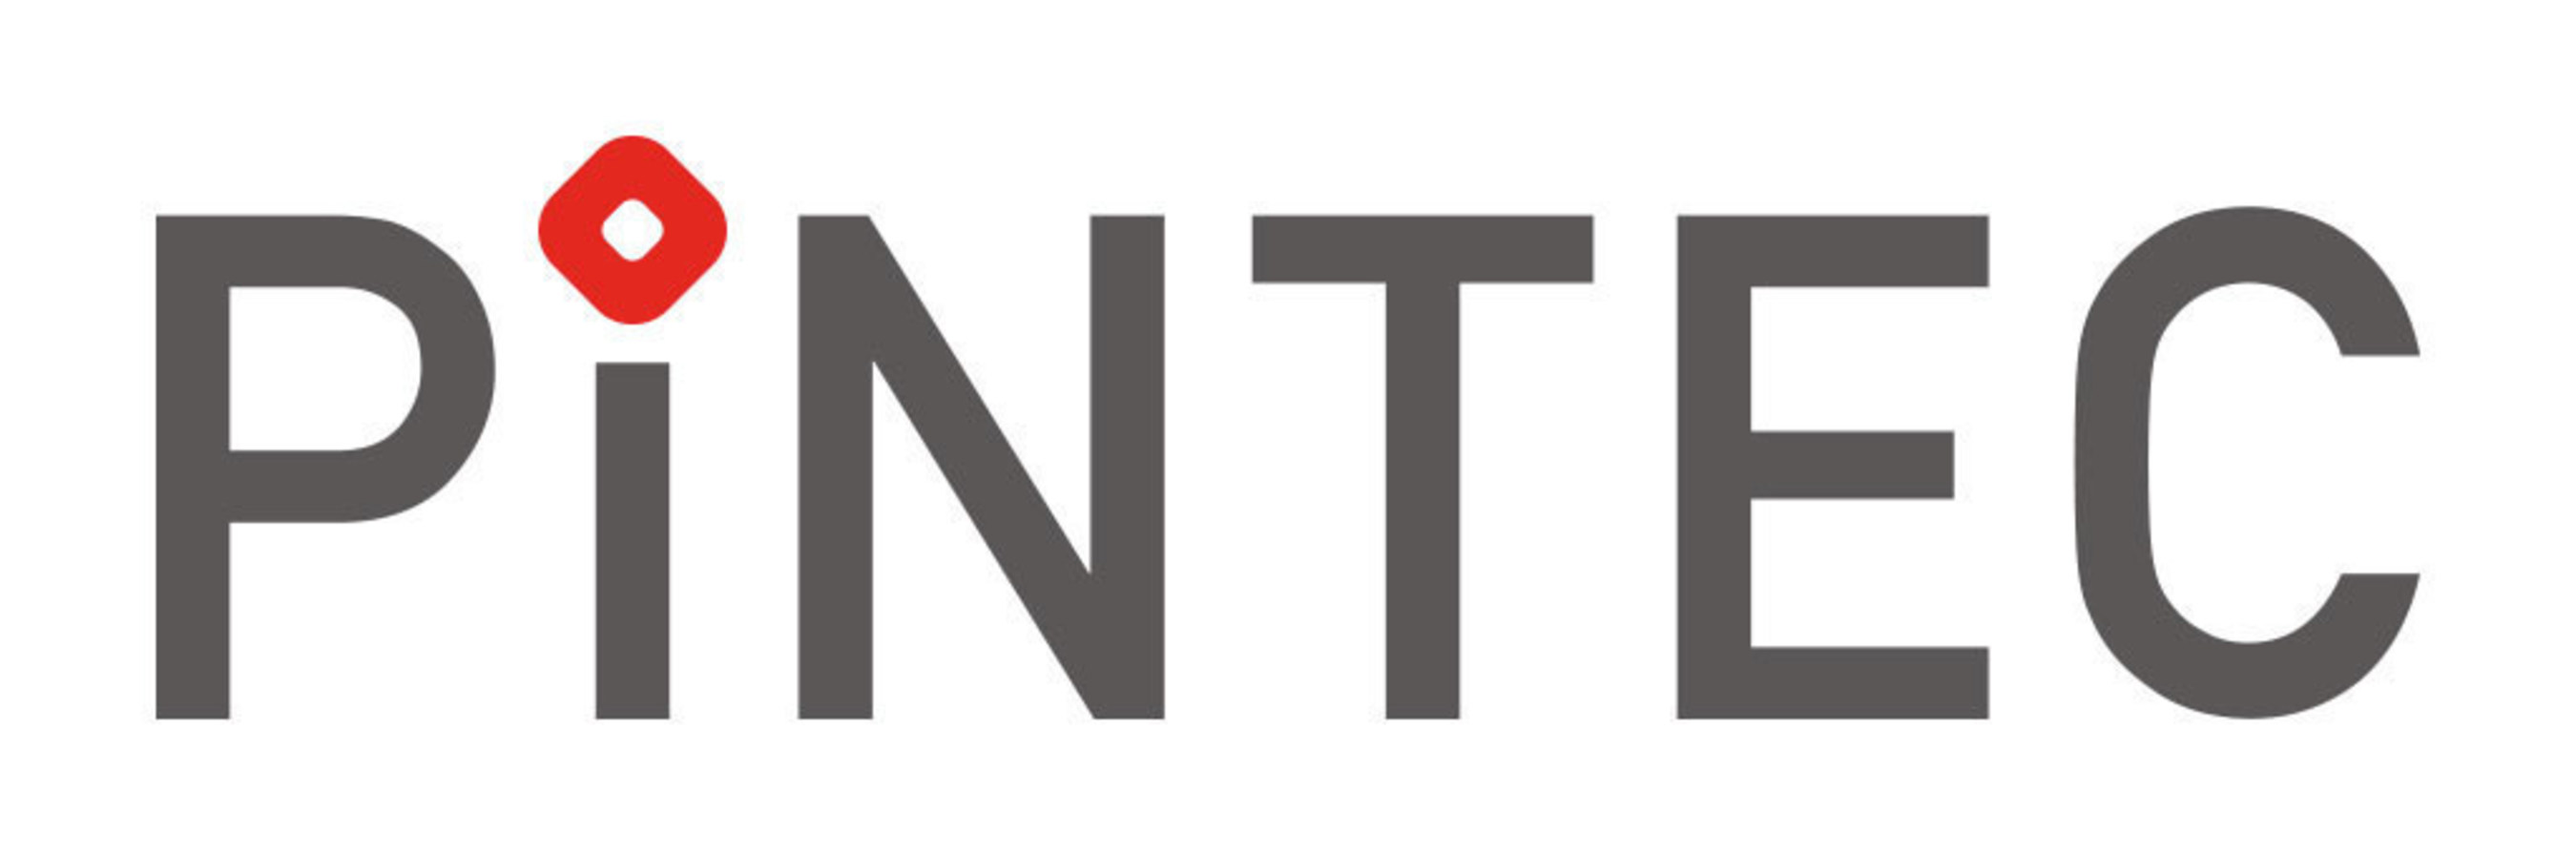 PINTEC Group to Spinoff Jimubox, Forming Independent Company JIMU Group